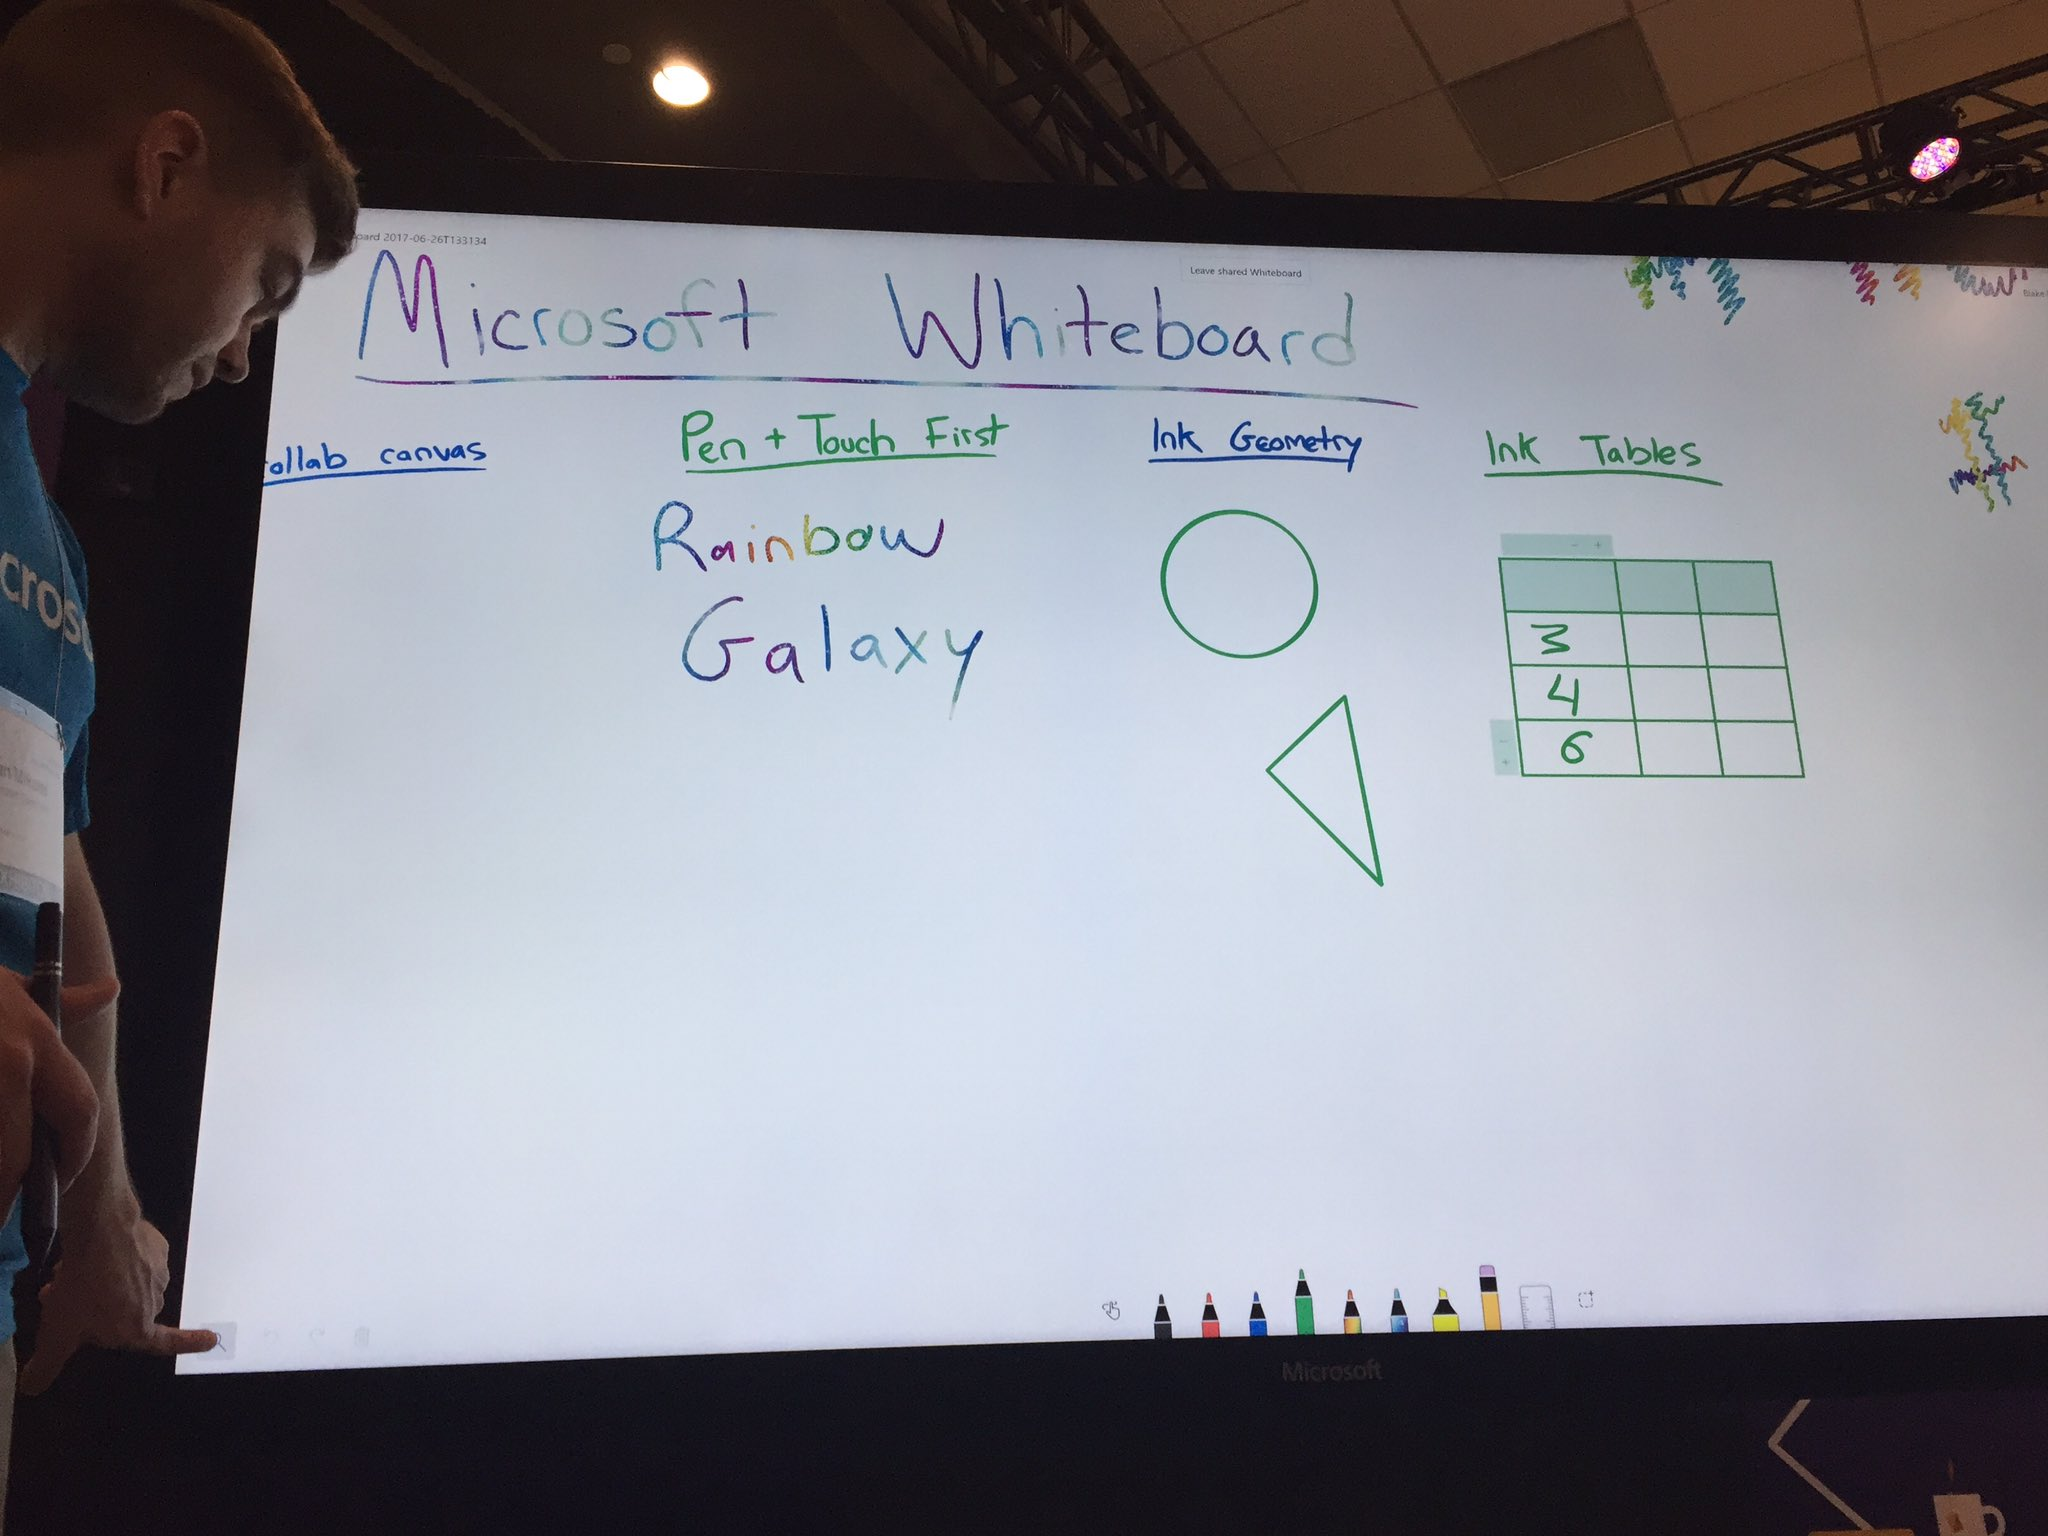 "Checking out  ""Microsoft Whiteboard"" software being released for all Win 10 devices by year end. Interesting for our IFPs  #fcpsiste https://t.co/DjFaxeCZf9"